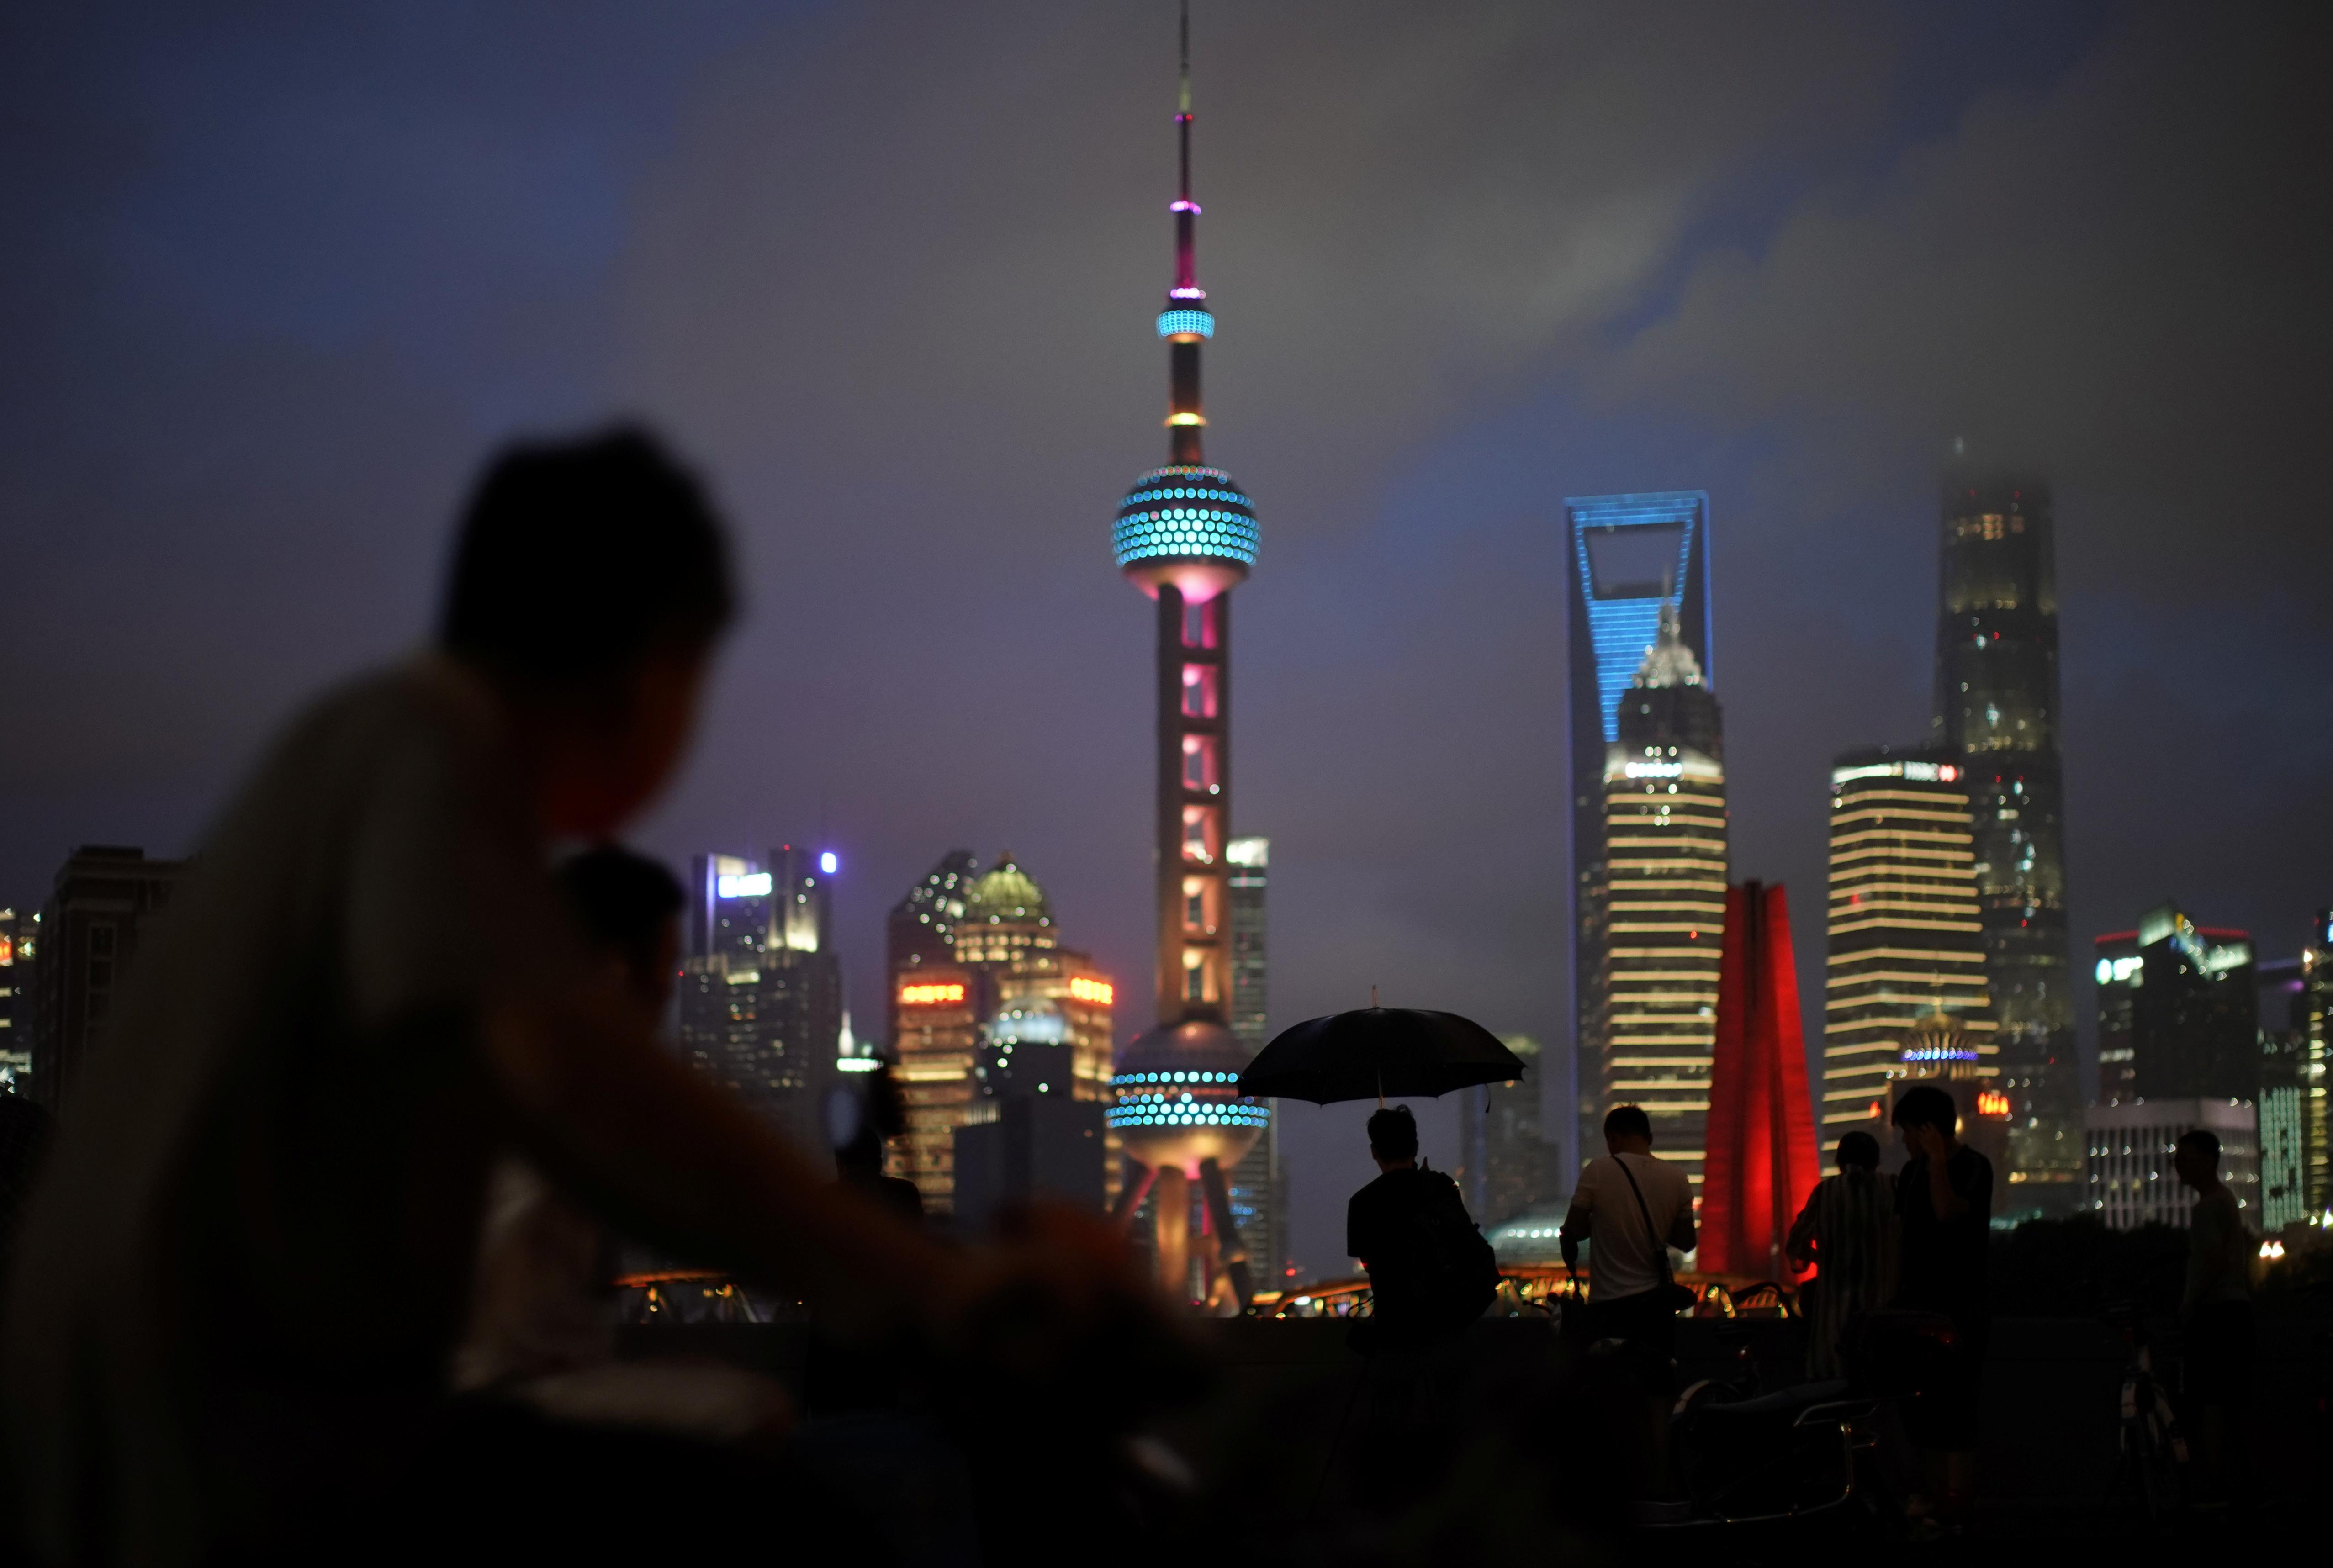 China September new bank loans beat expectations, more easing seen